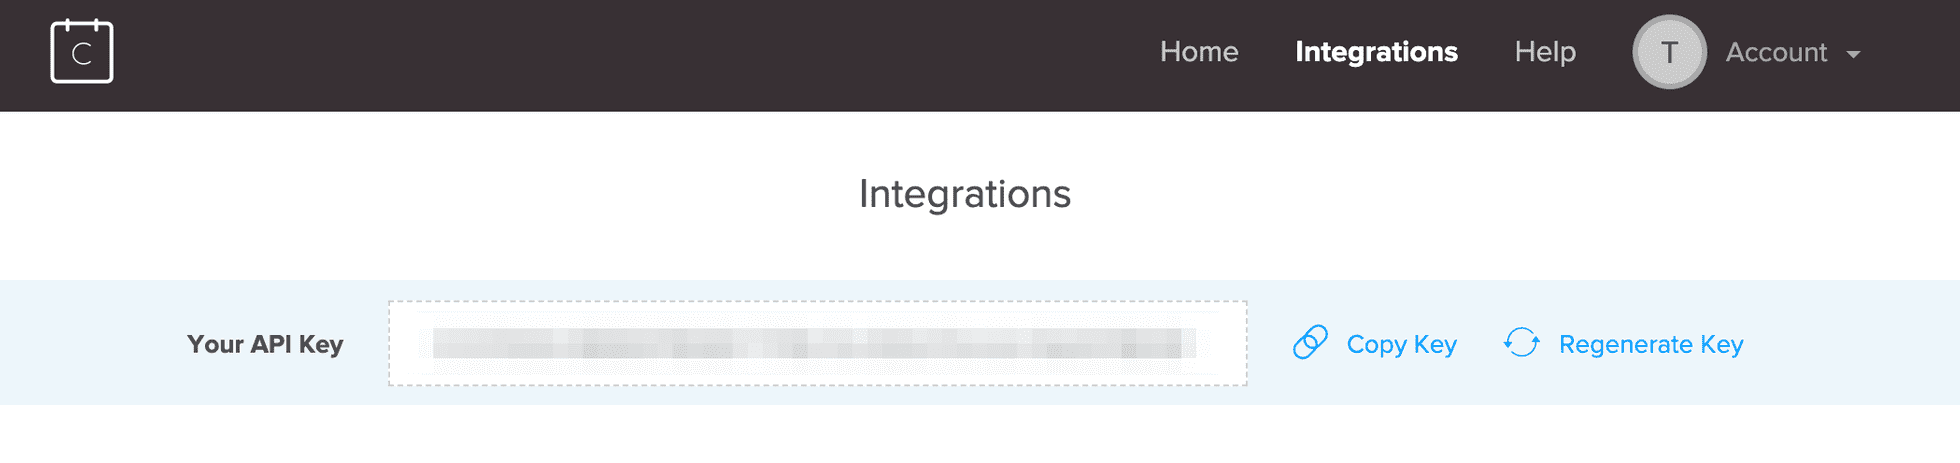 Photo of the API key found with Calendly's integrations page